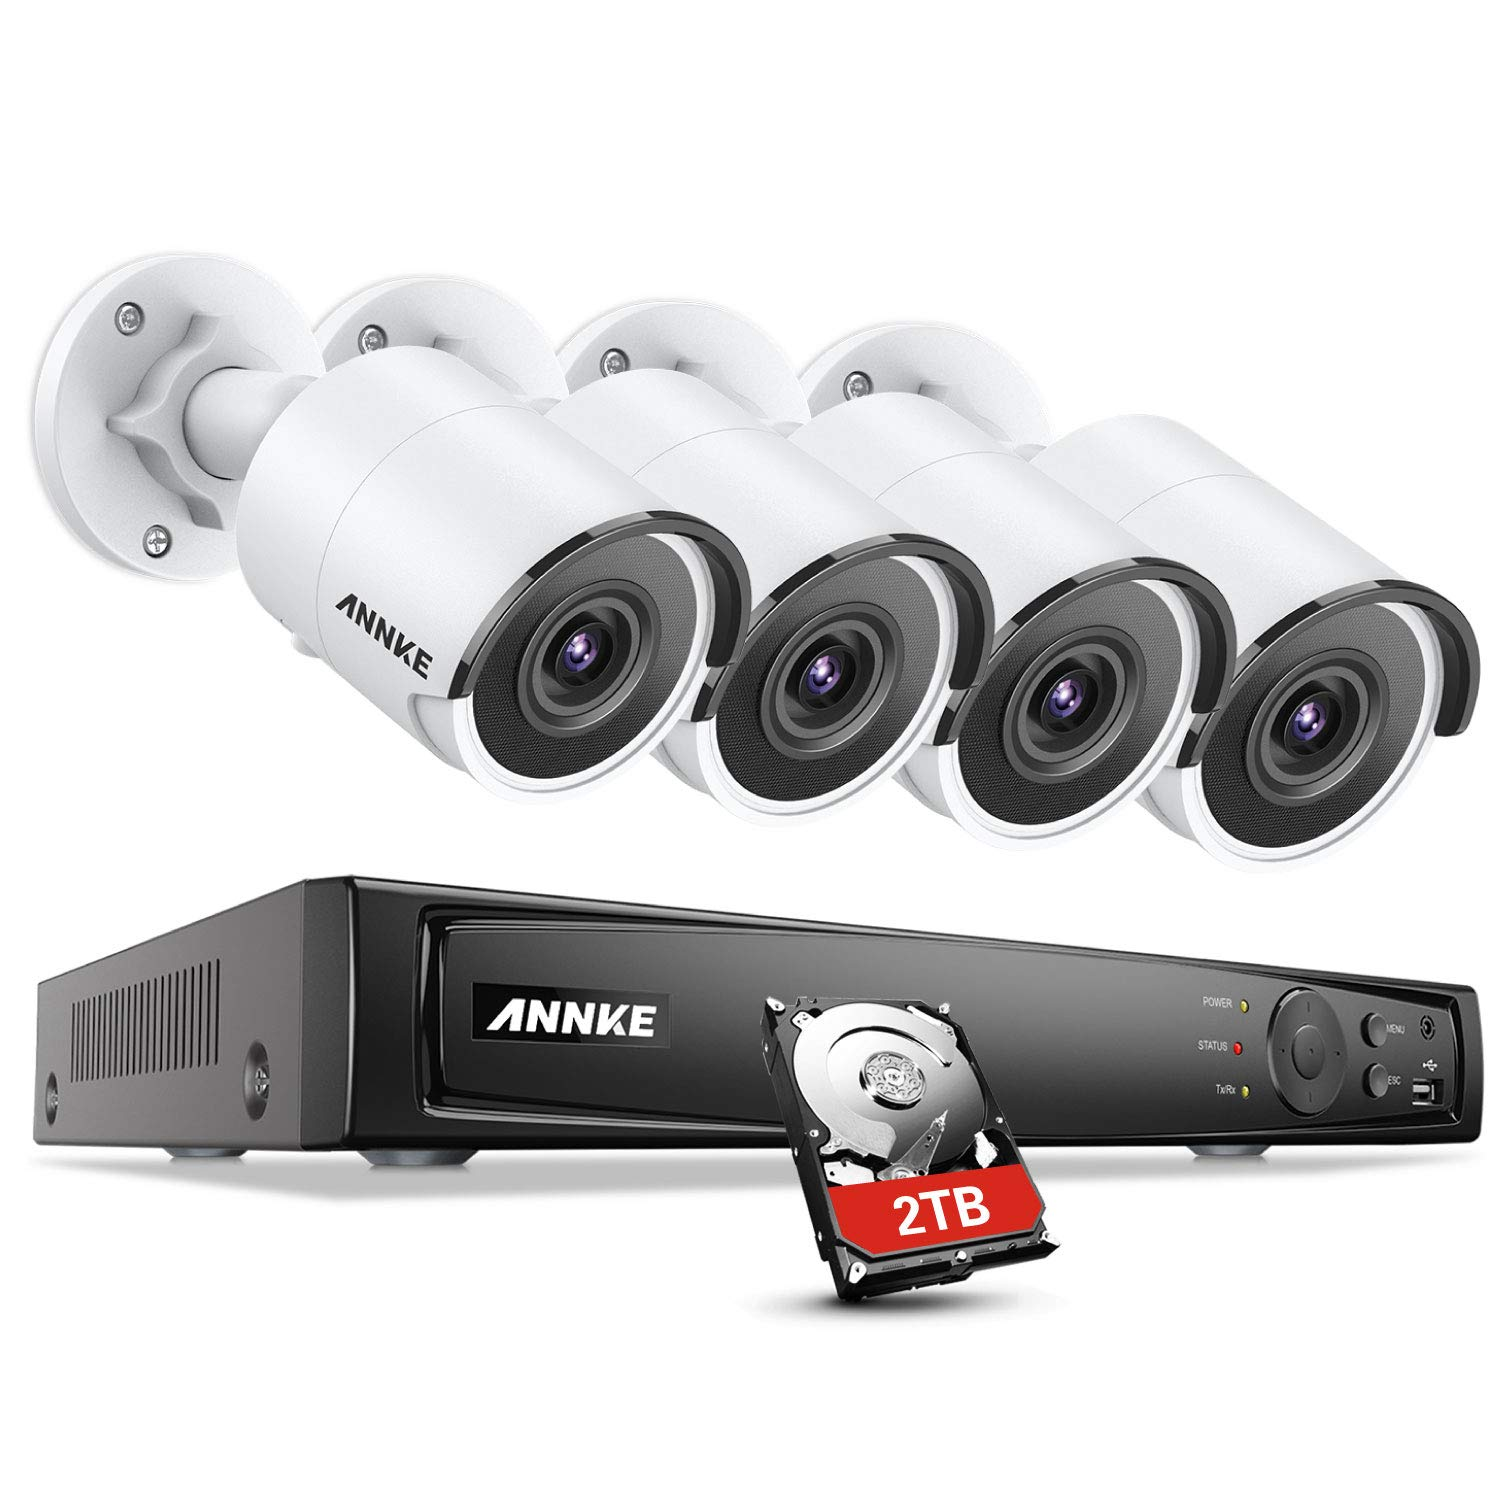 ANNKE 4K PoE Security Camera System 8CH H.265 NVR and 4pcs Ultra HD 8MP Outdoor Wired IP Cameras 2TB HDD, 100ft Night Vision,IP67 Weatherproof, Video Surveillance with Motion Detect Smart Playback by ANNKE